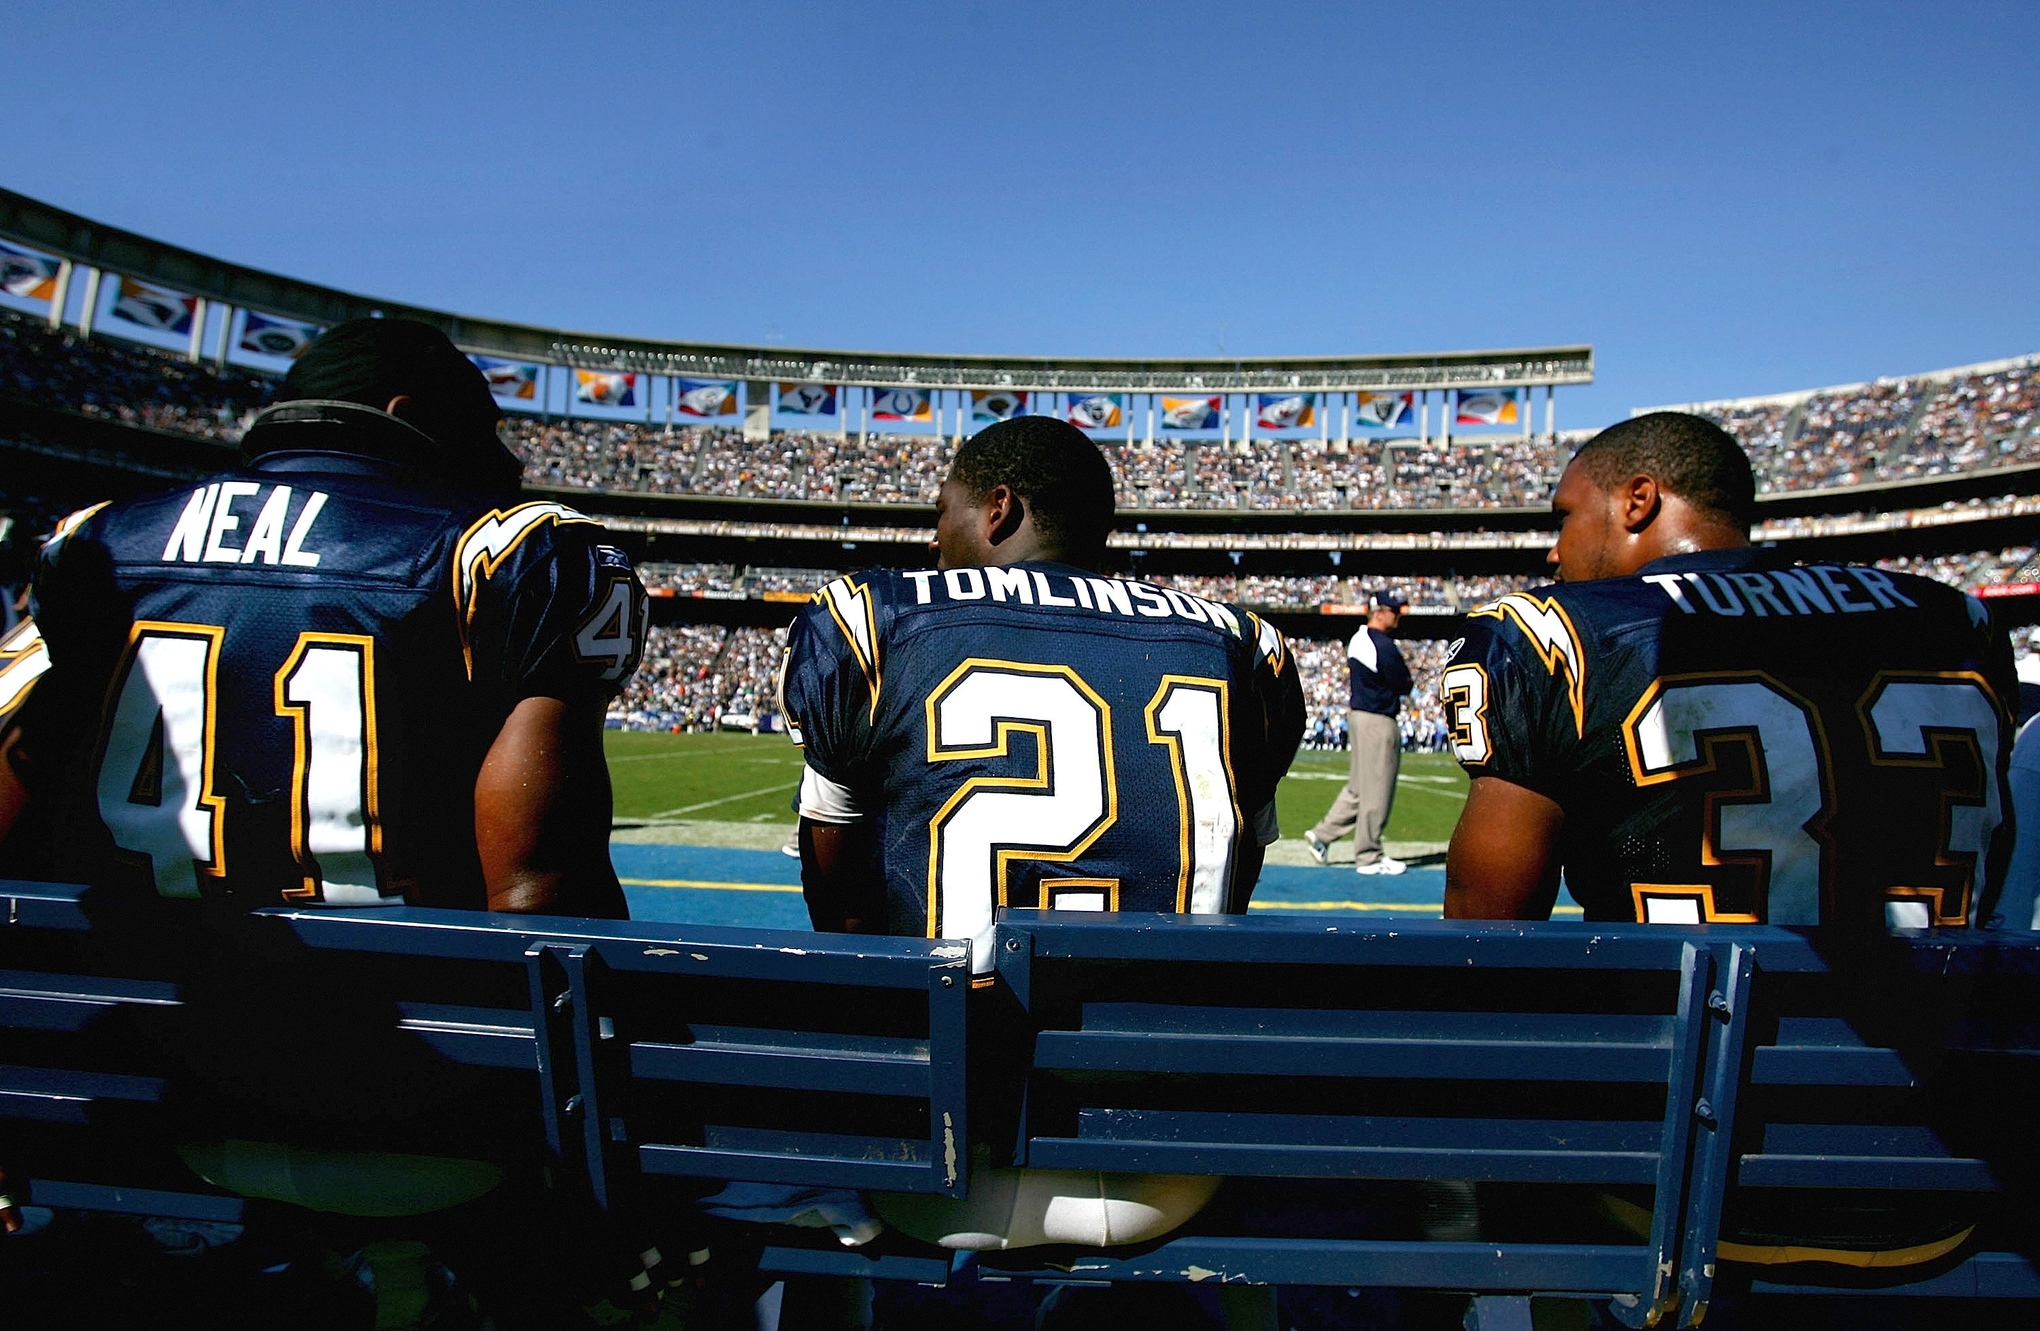 (L-R) Running backs Lorenzo Neal #41, LaDainian Tomlinson #21 and Michael Turner #33 of the San Diego Chargers talk on the bench during the game against the Tennessee Titans September 17, 2006 at Qualcomm Stadium in San Diego, California.